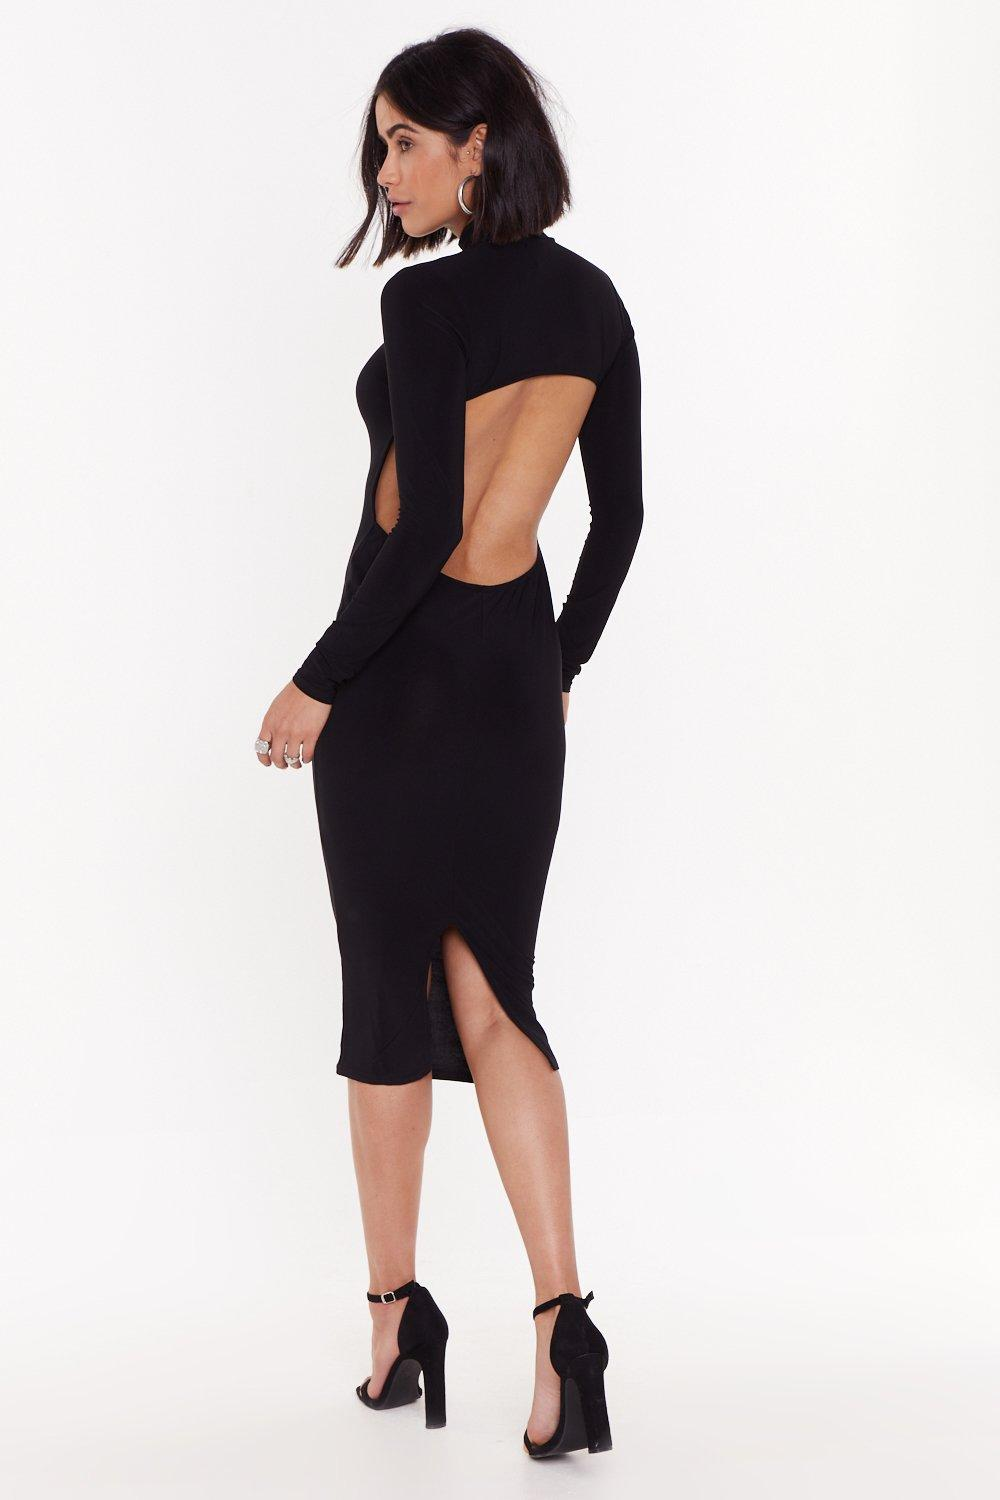 fd64384f77bb Opening Up for Love High-Neck Midi Dress | Shop Clothes at Nasty Gal!